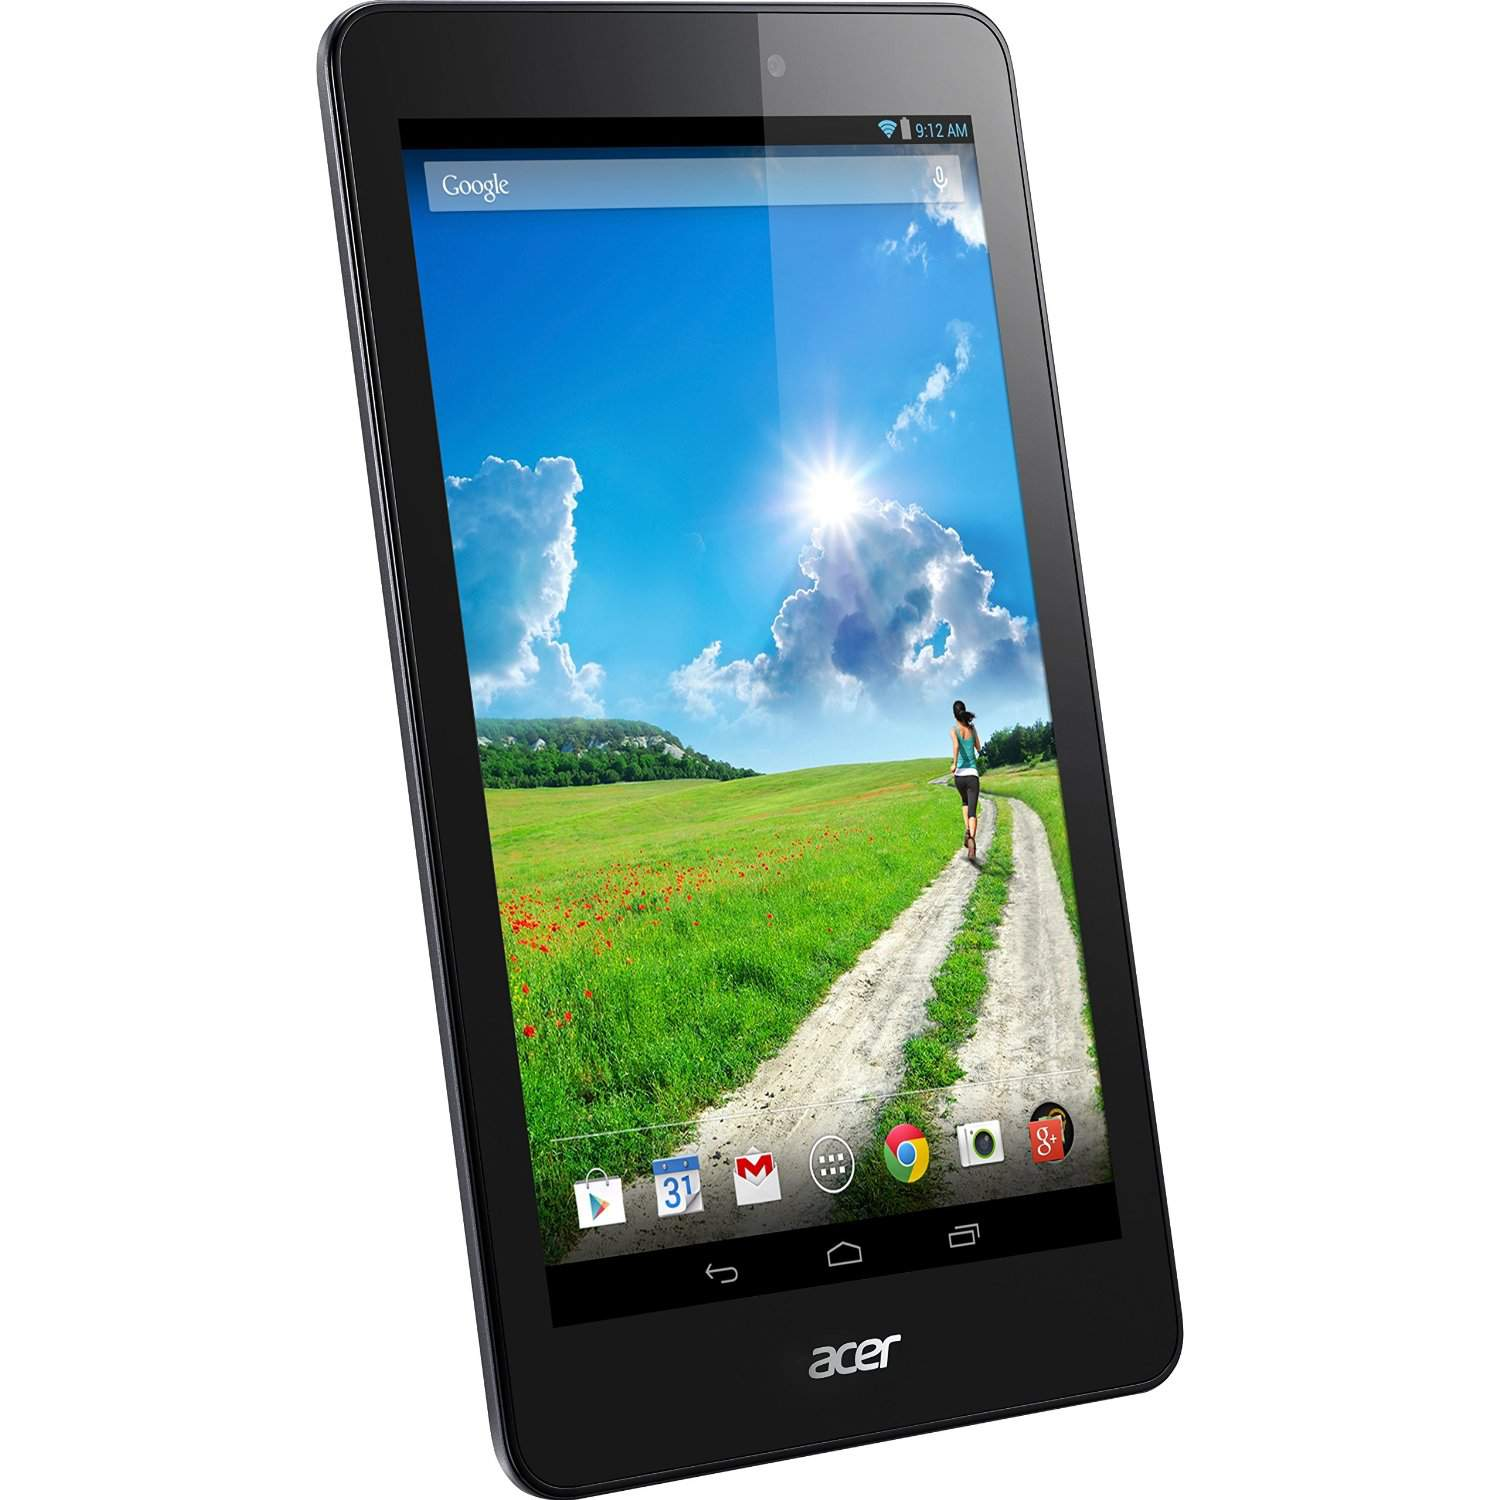 acer tablets amazon hottest black friday deals 2015